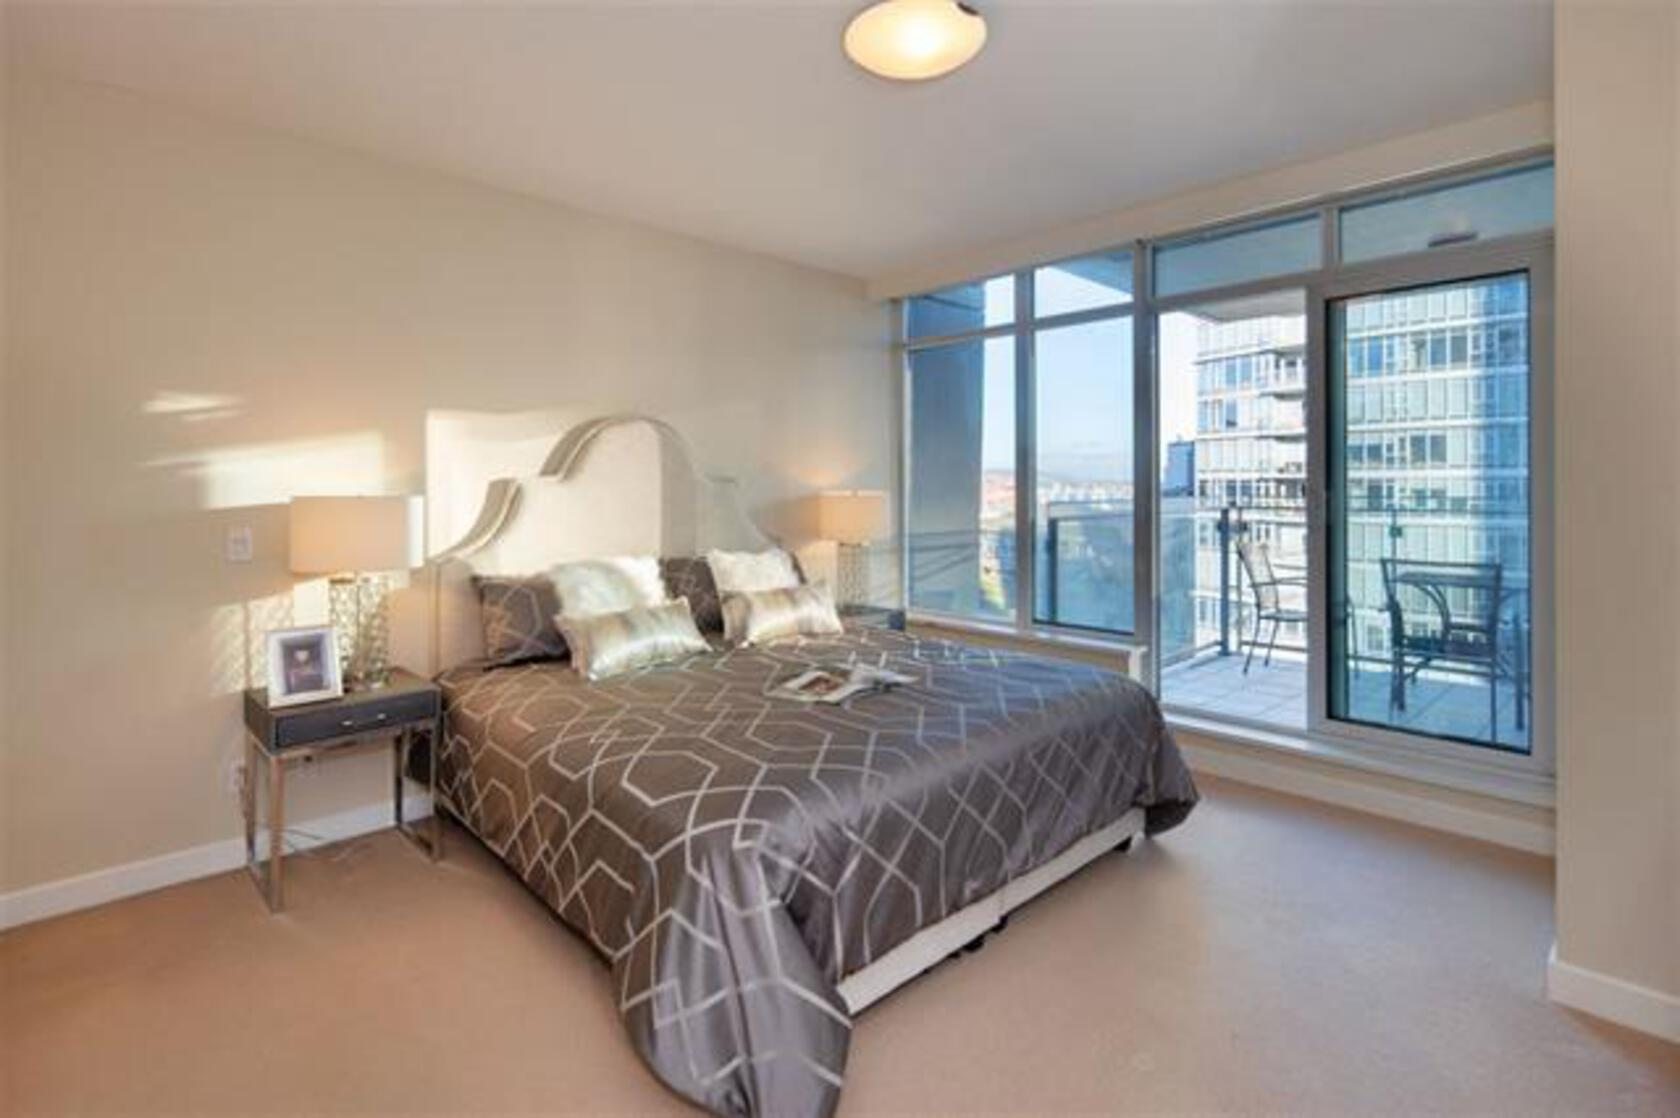 14b33ed4-8165-4f61-9b7a-445dd90eade6 at 2803 - 1281 W Cordova, Coal Harbour, Vancouver West